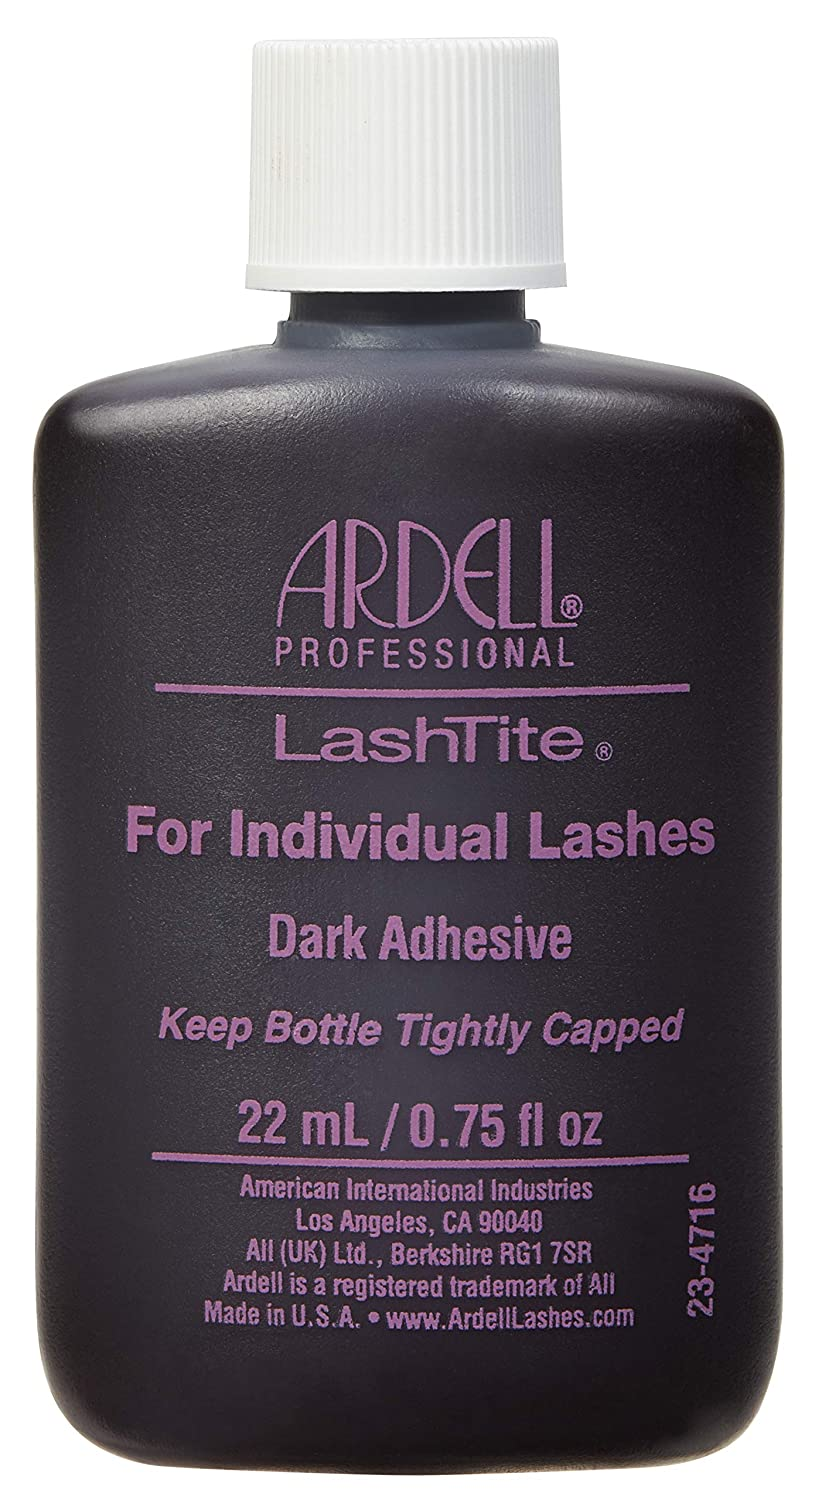 6766b7d8b9f Amazon.com : Ardell Lashtite Adhesive, Dark, 0.75 fl.oz. Bottle (2-Pack) :  Beauty